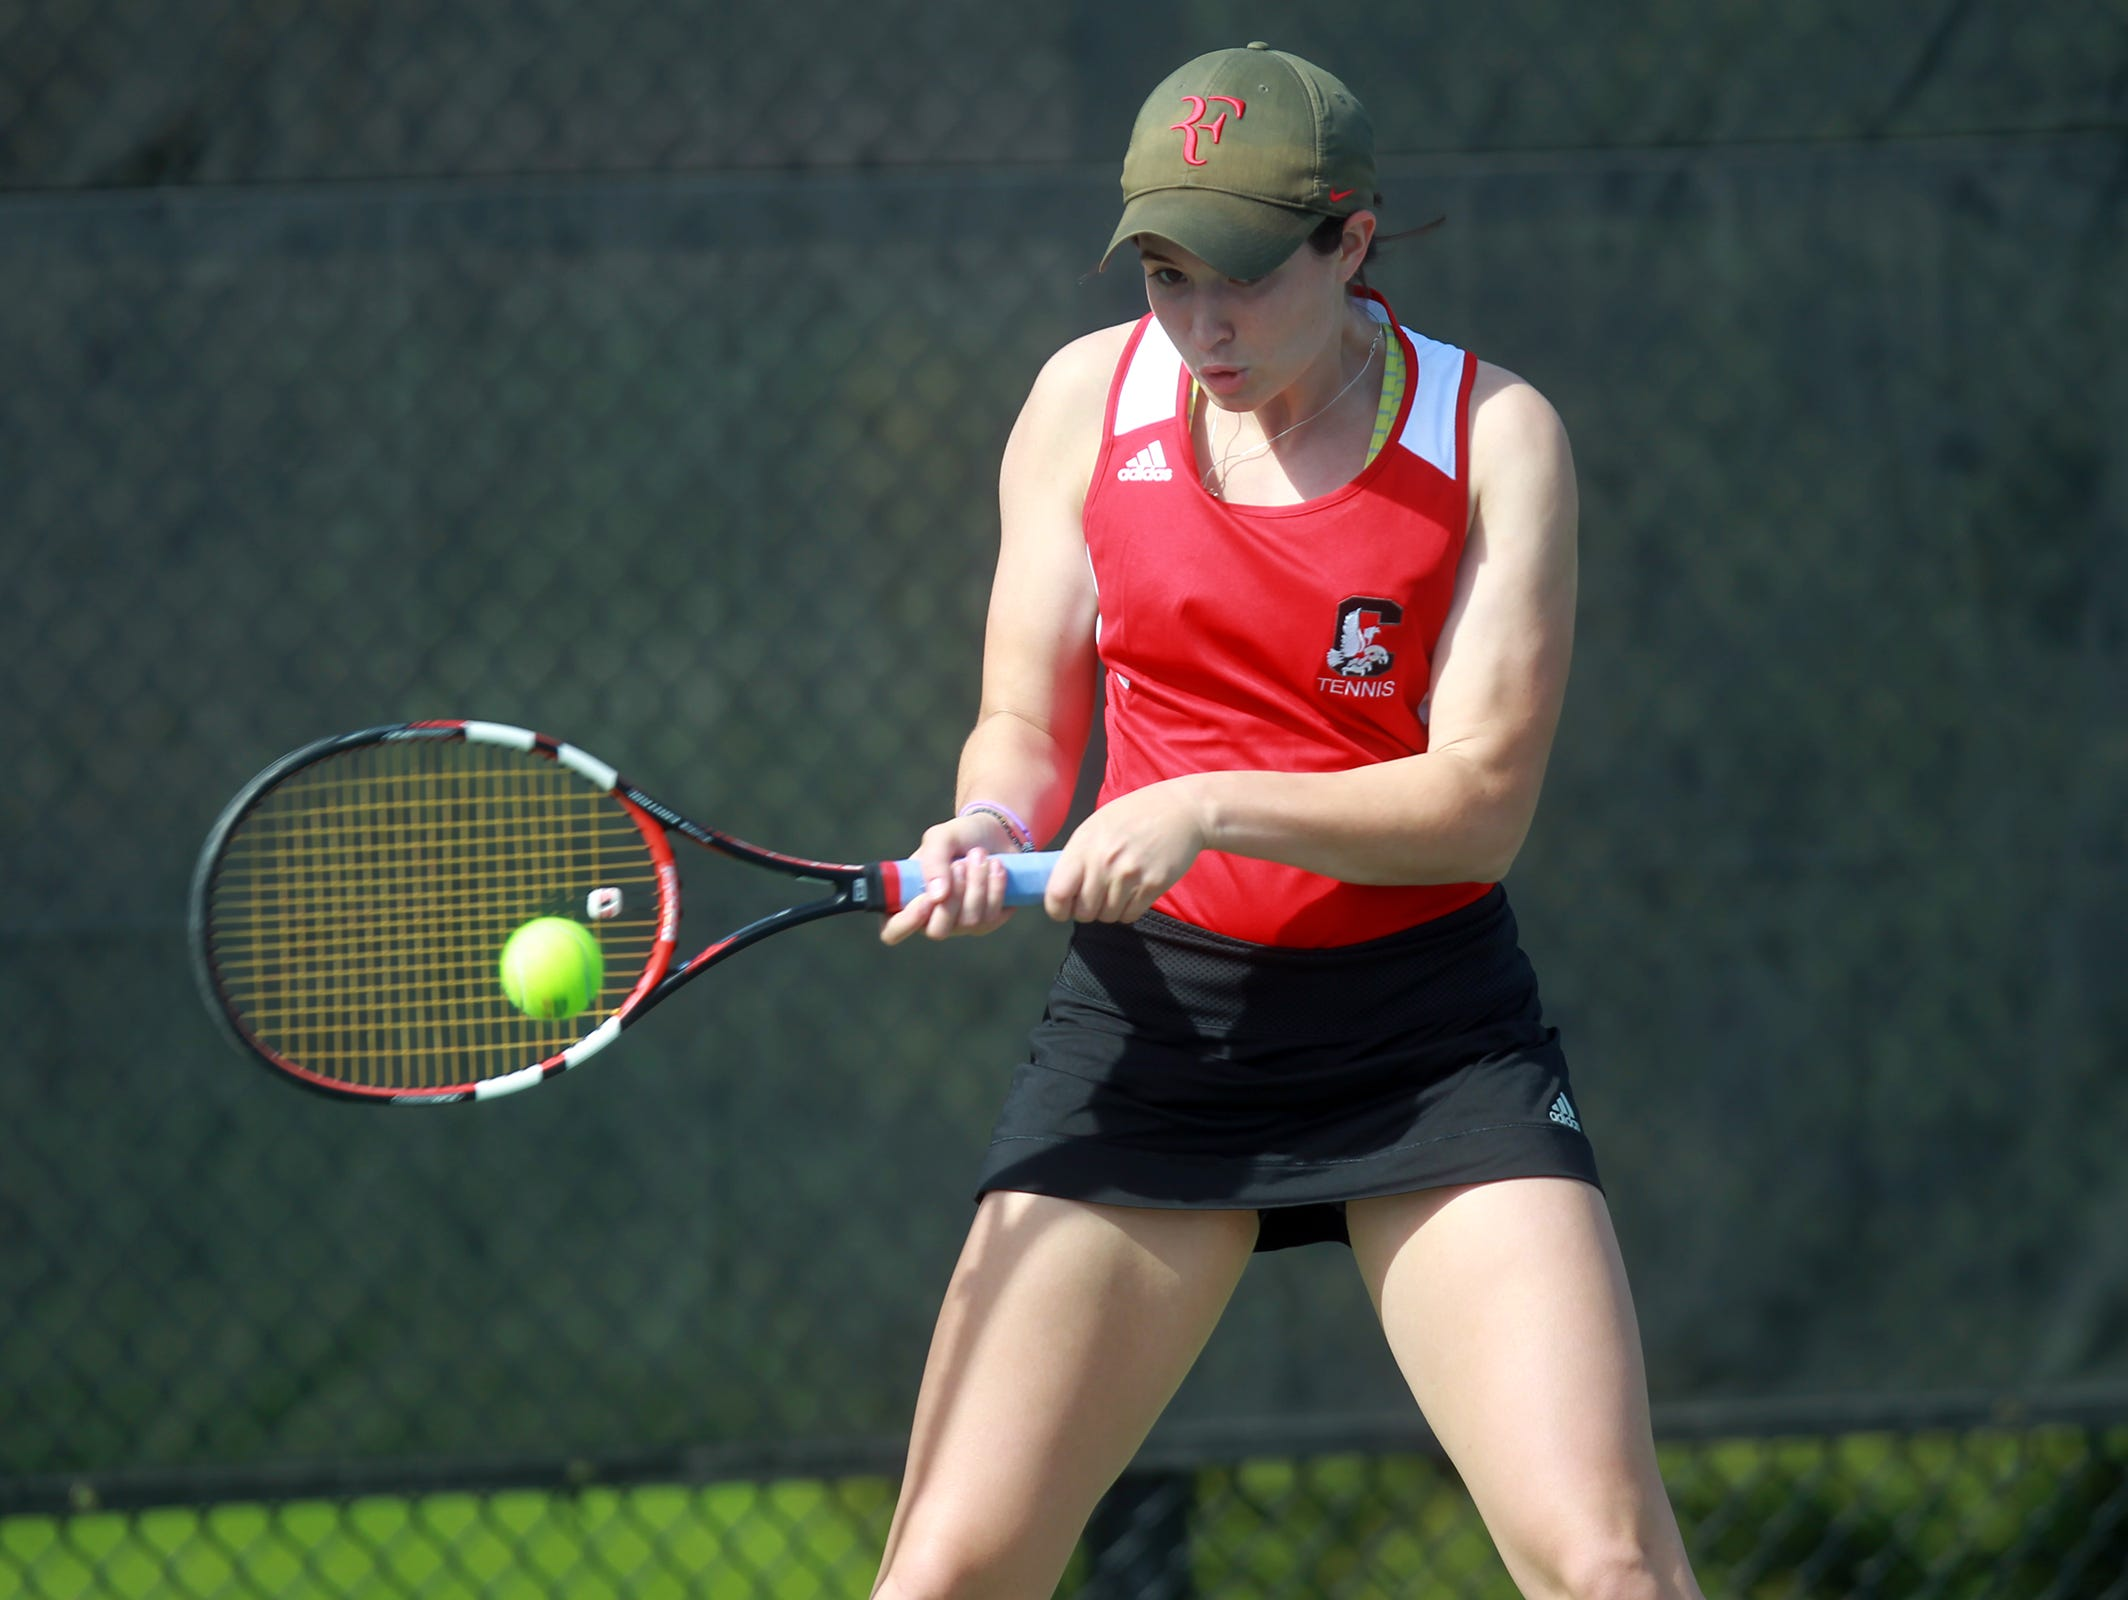 City High's Innes Hicsasmaz returns a shot during her match against West High's Hannah Smigel at the Hawkeye Tennis and Recreation Complex on Tuesday.